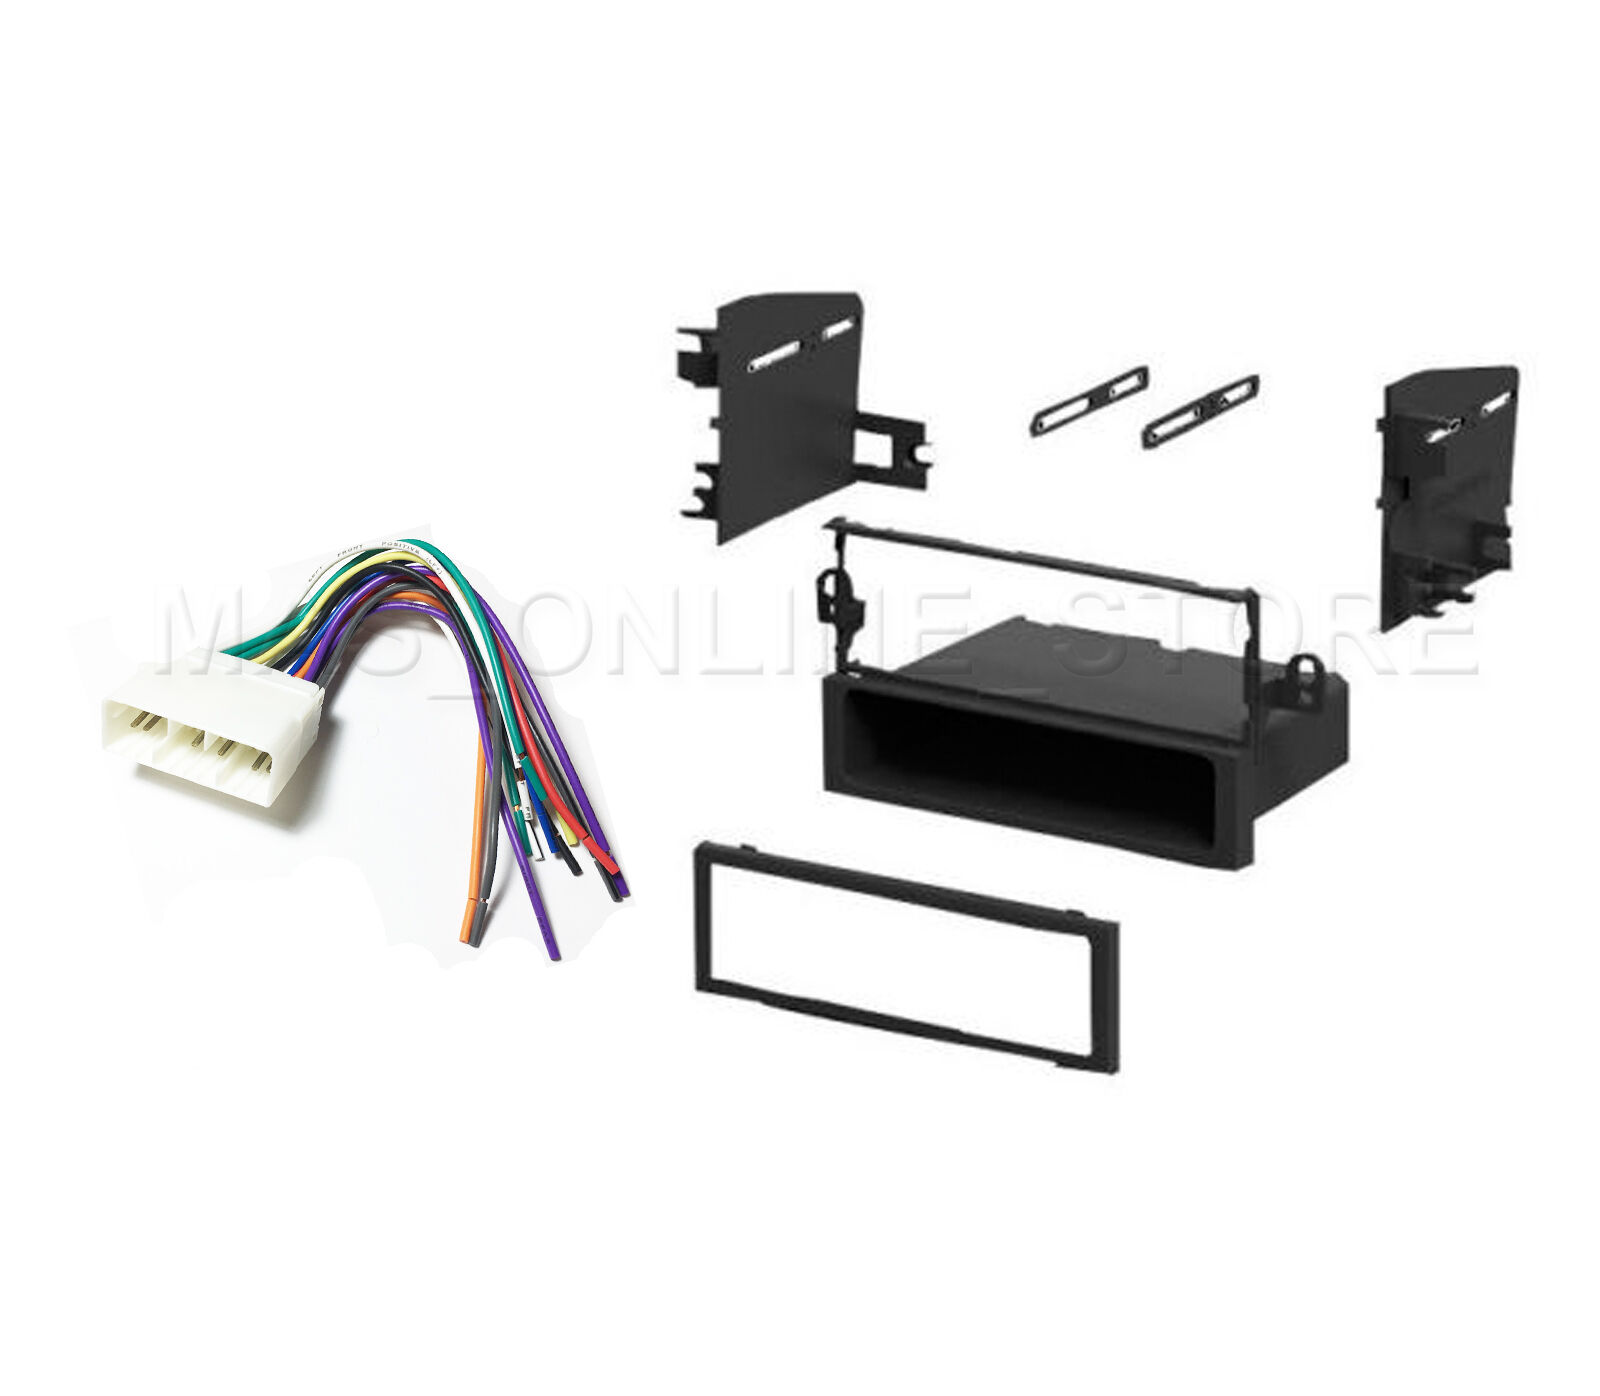 Car Stereo Single DIN Dash Kit And Wire Harness Chevrolet Aveo Daewoo  Suzuki 1 of 4FREE Shipping See More